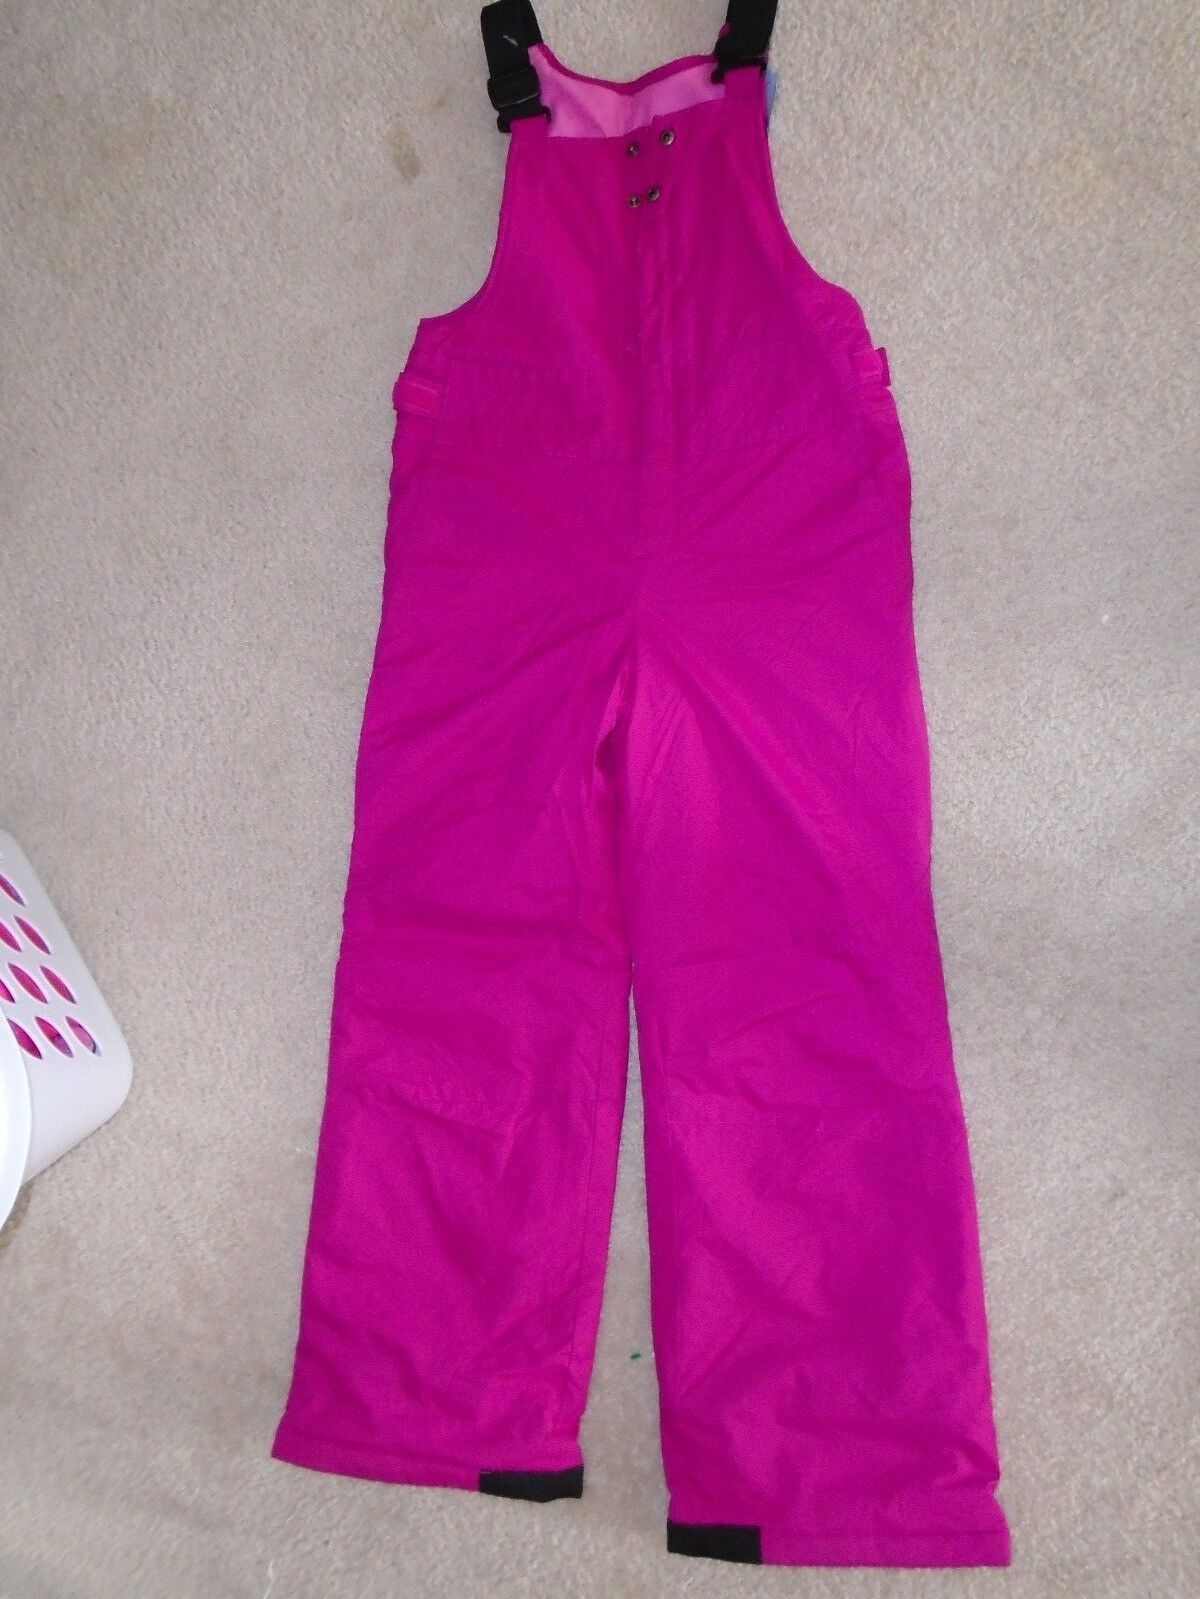 YOUTH 14 16 COLUMBIA MAGENTA lila  SNOWSUIT - USED, ONE PIECE